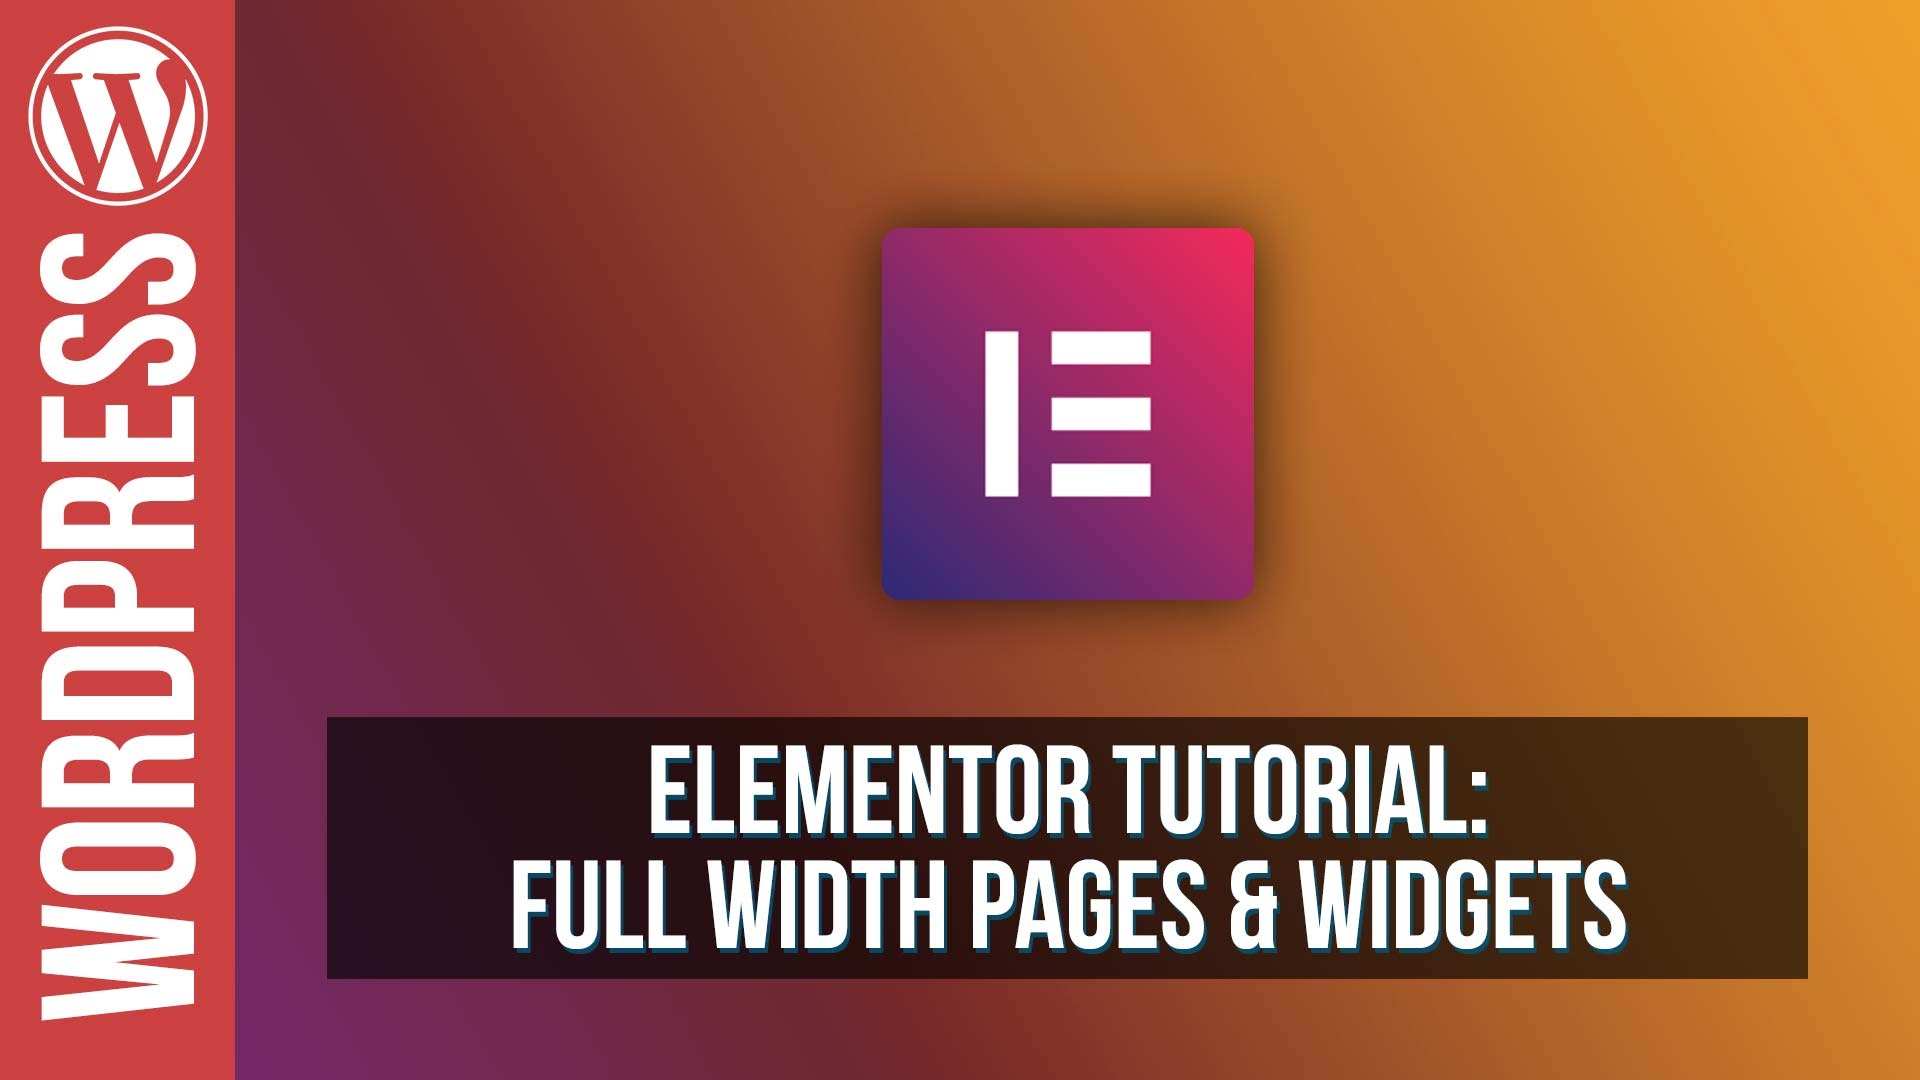 Elementor For WordPress – Full Width Pages & Widgets Tutorial